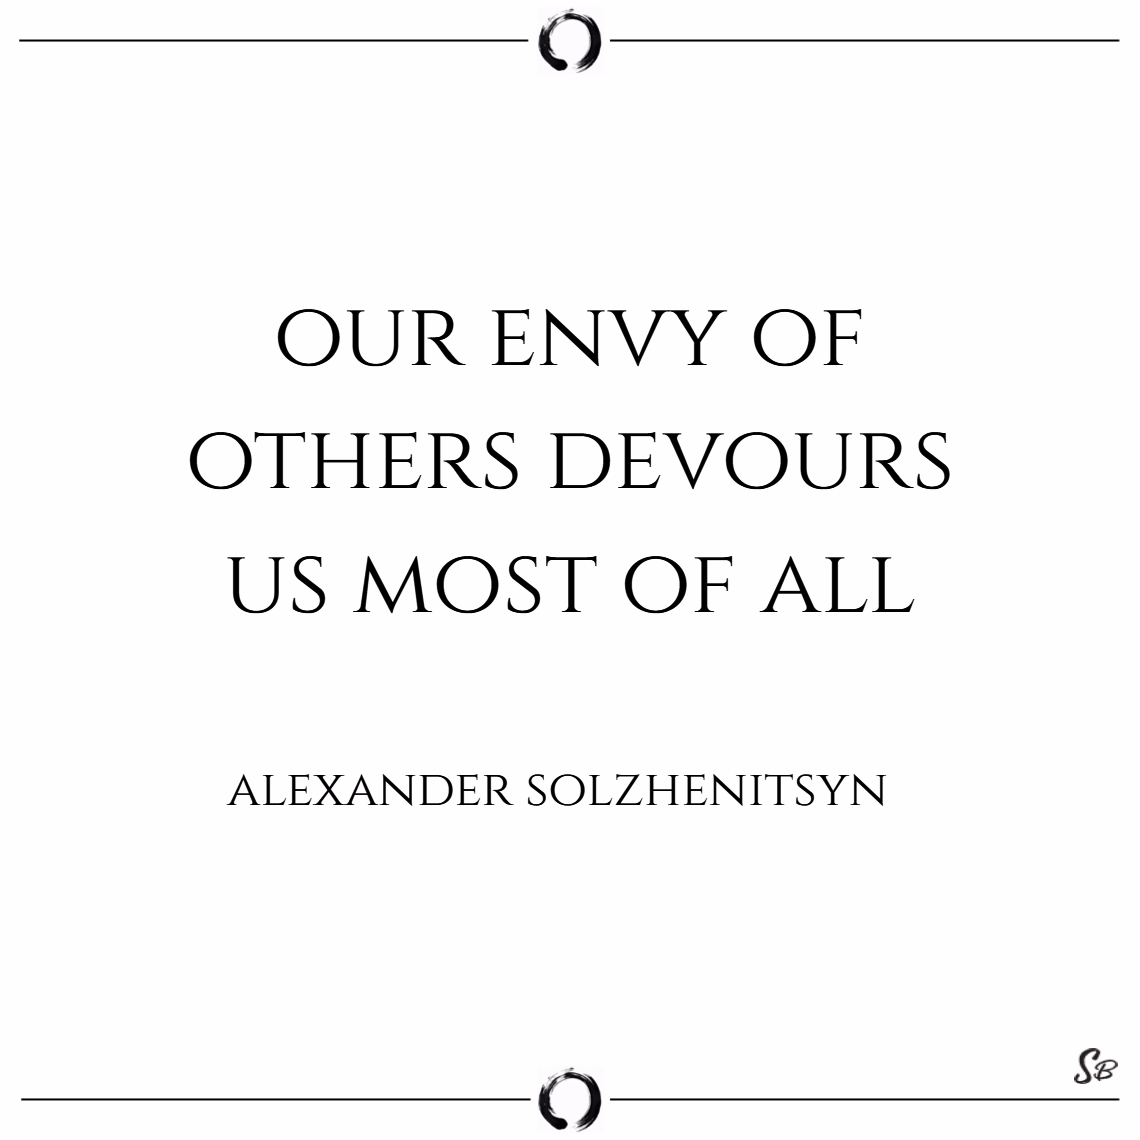 Our envy of others devours us most of all. – alexander solzhenitsyn